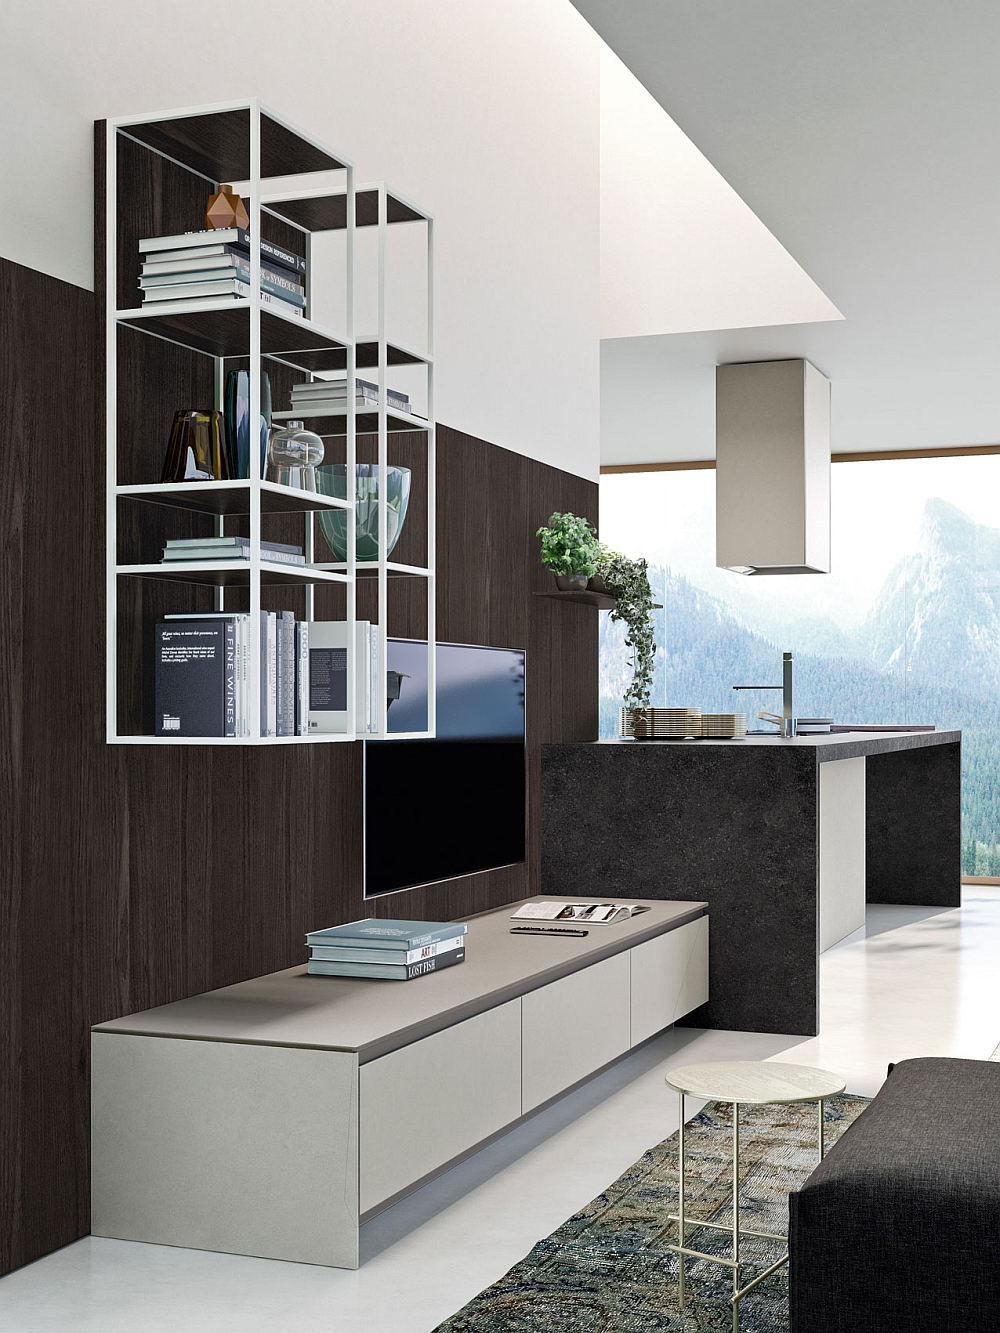 Design Kitchen Set Posh Kitchen Compositions Fuse Modularity With Minimal